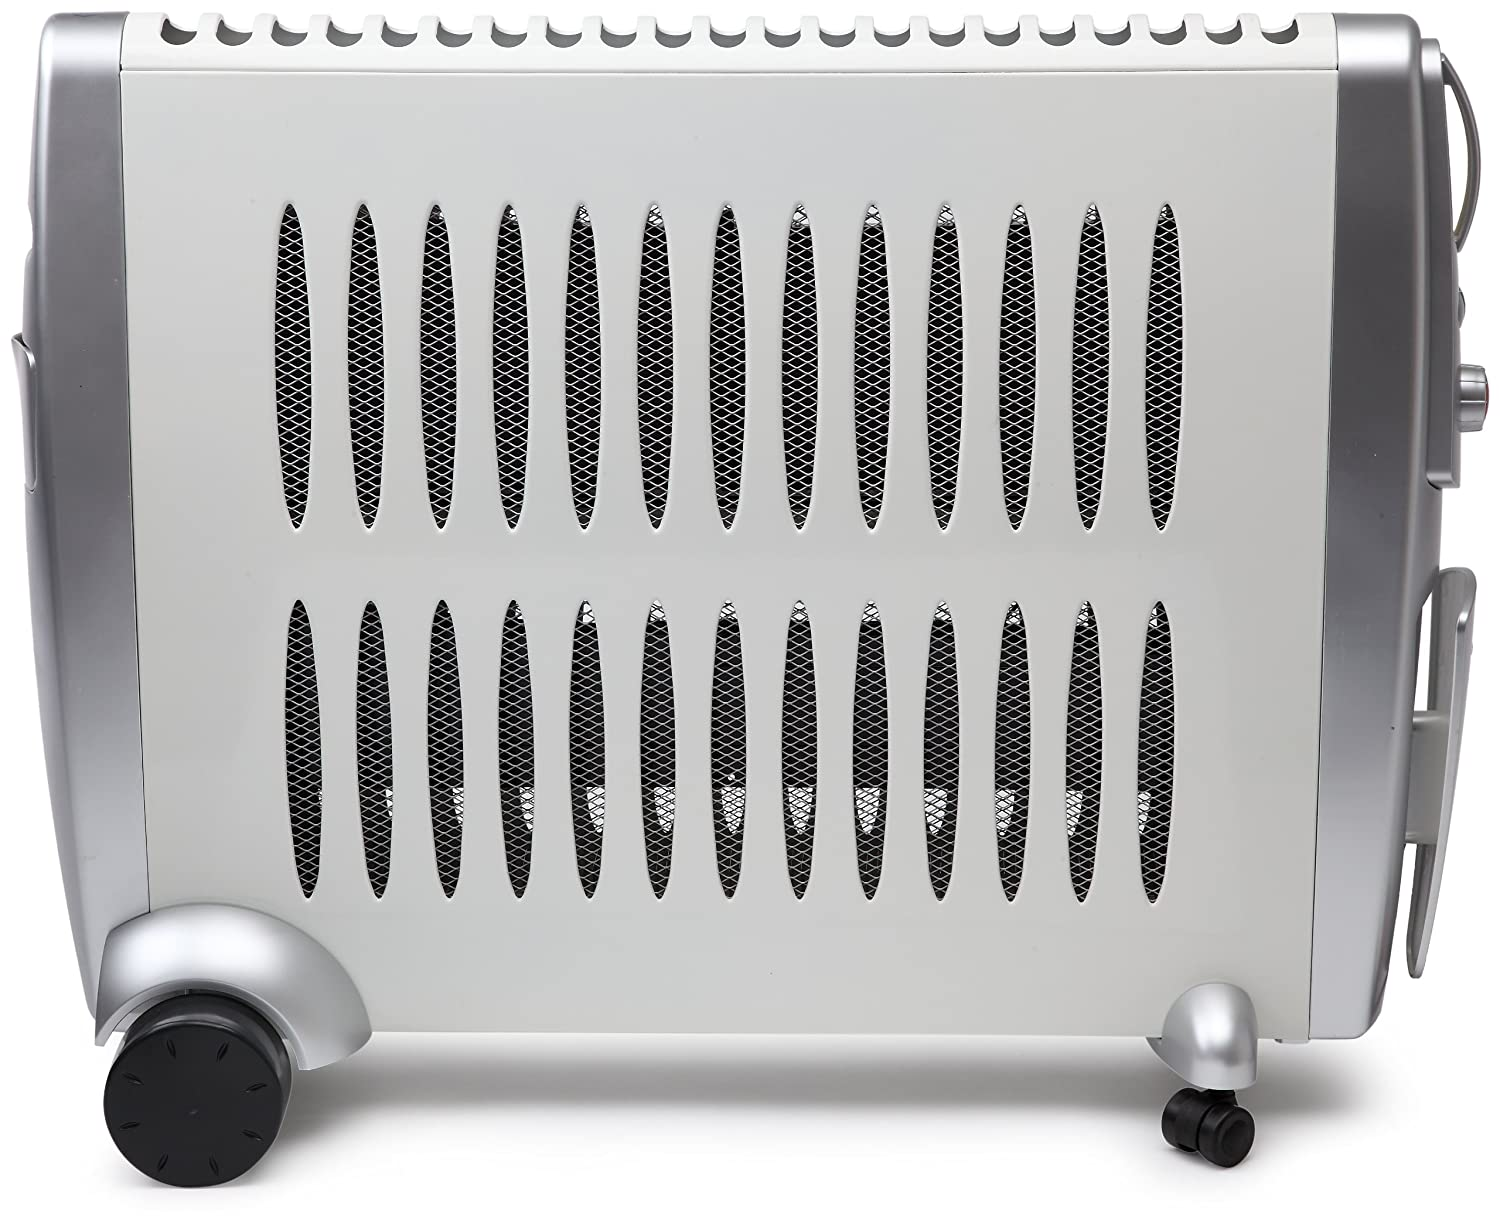 radiateur electrique portable top interesting radiateur electrique soufflant ww cramique blanc. Black Bedroom Furniture Sets. Home Design Ideas